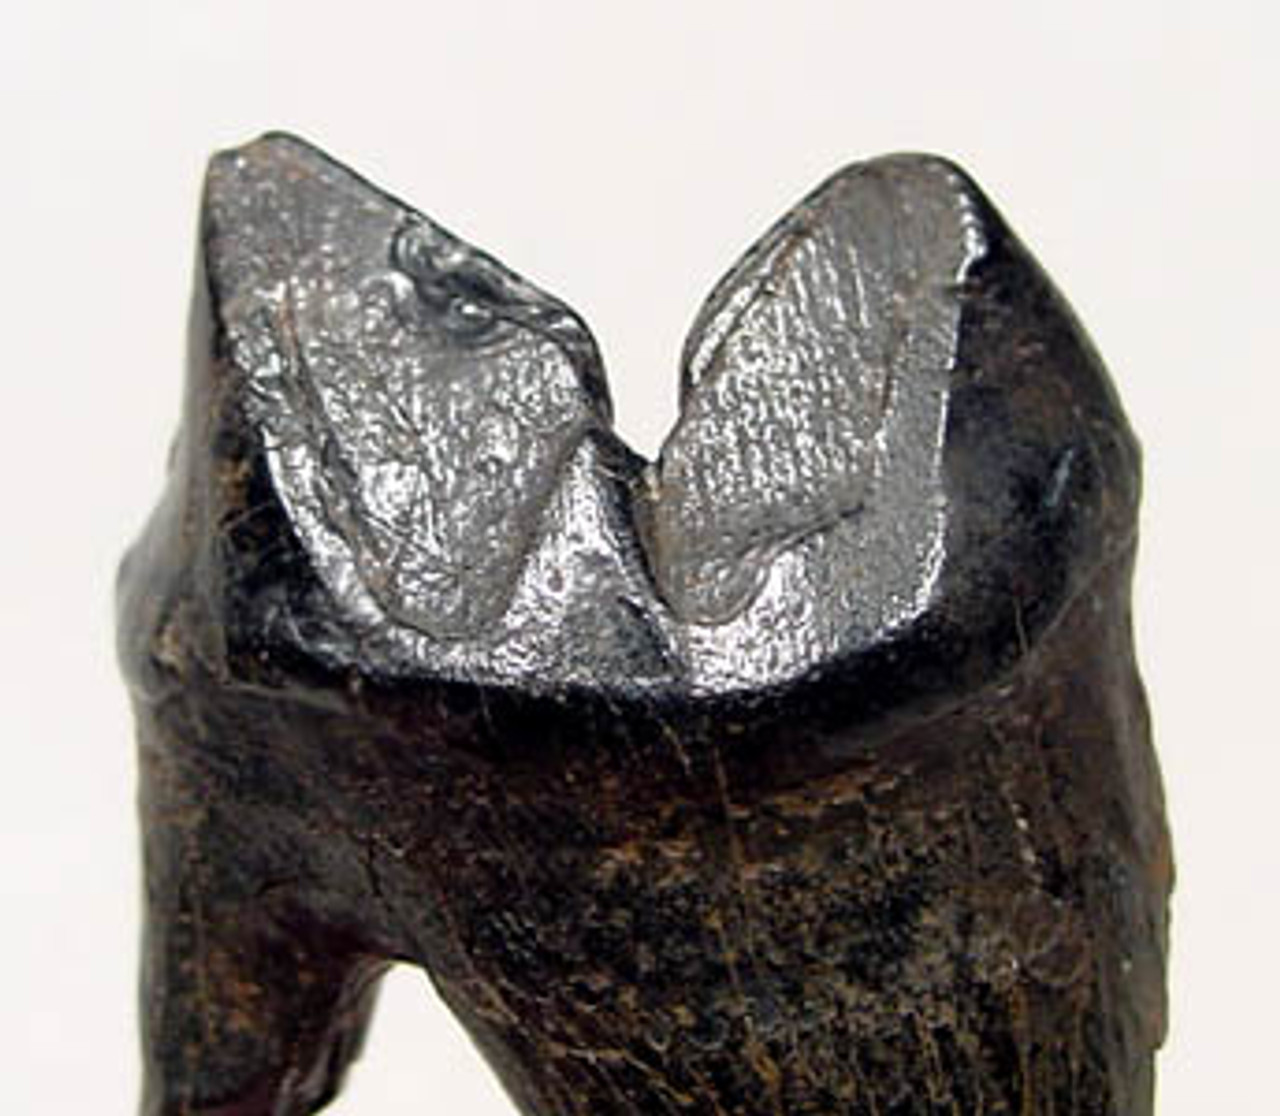 "LM9-006 - LARGE COMPLETE PREHISTORIC FOSSIL JAGUAR CARNASSIAL ""MEAT-SHEARING"" TOOTH WITH ROOT"